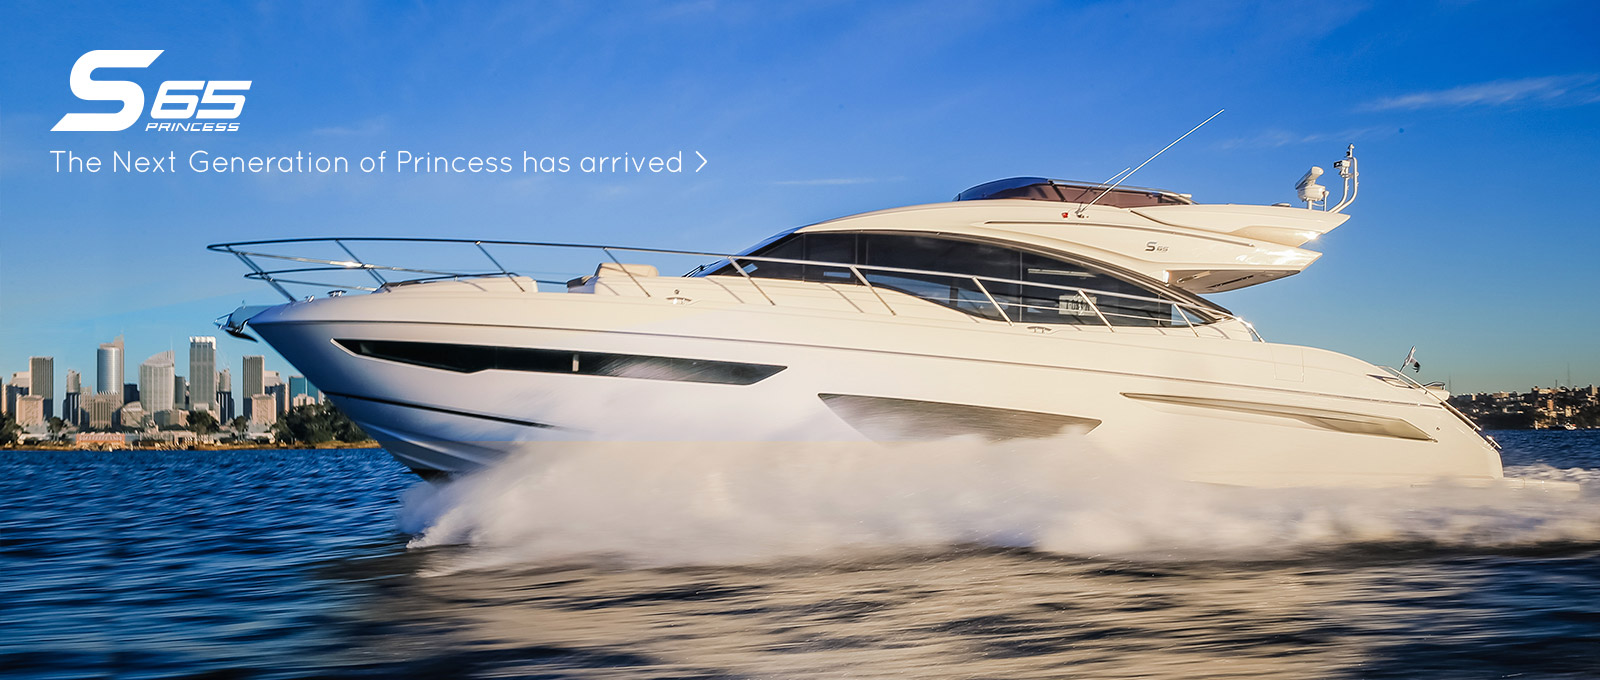 Luxury Boats Amp Super Yachts For Sale In Australia